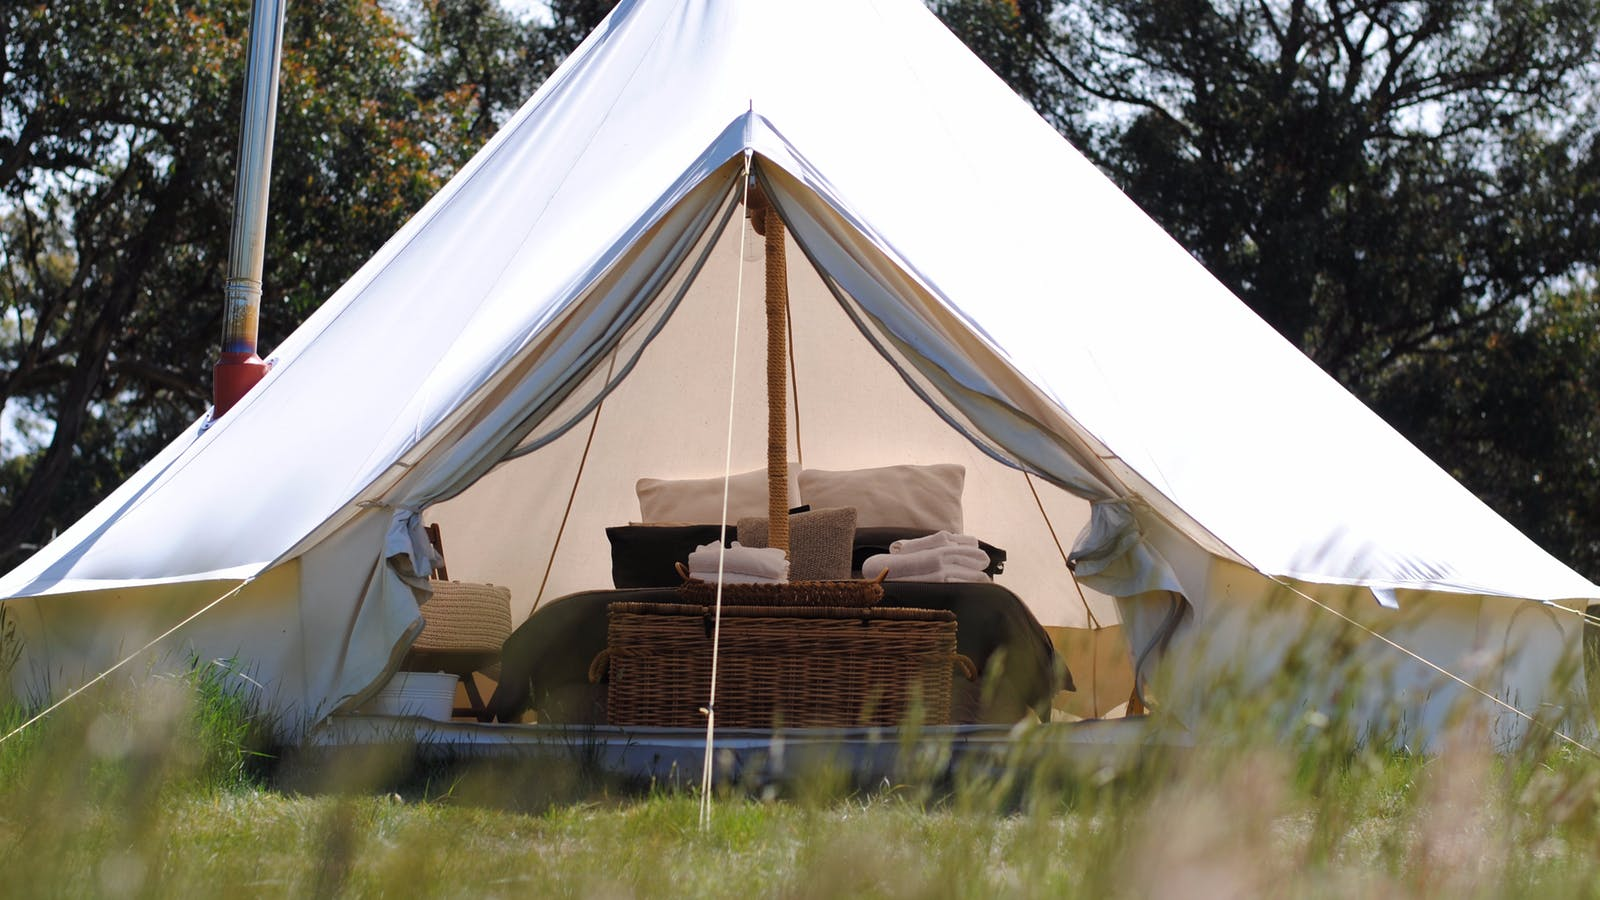 Cosy Tents - Inside five metre bell tent